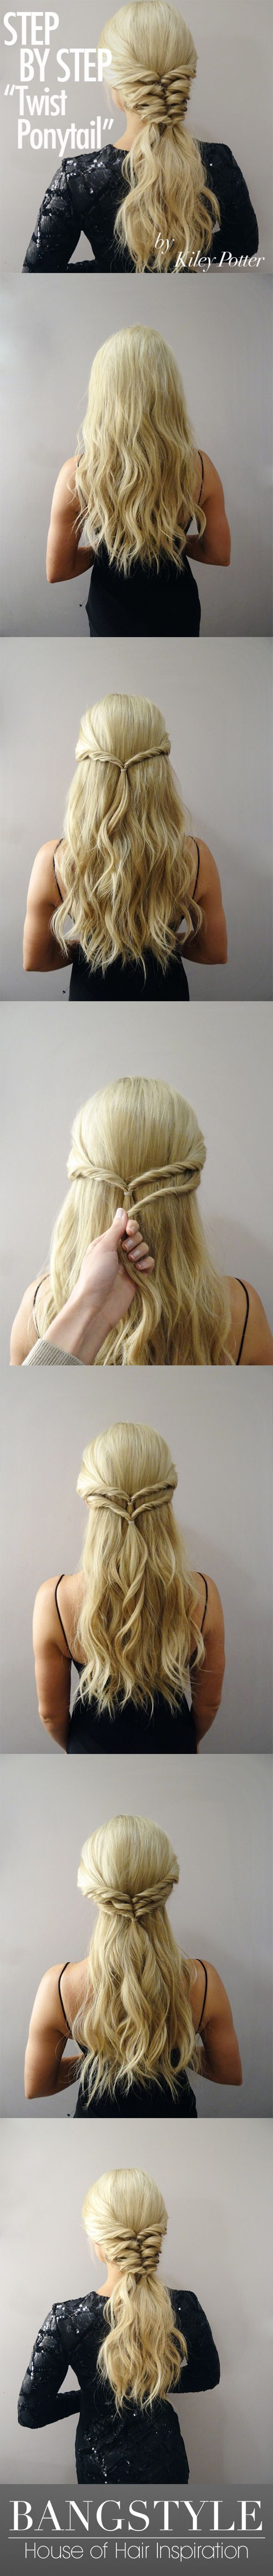 Can't decide between a pony tail and a braid? Bring both together in perfectio...